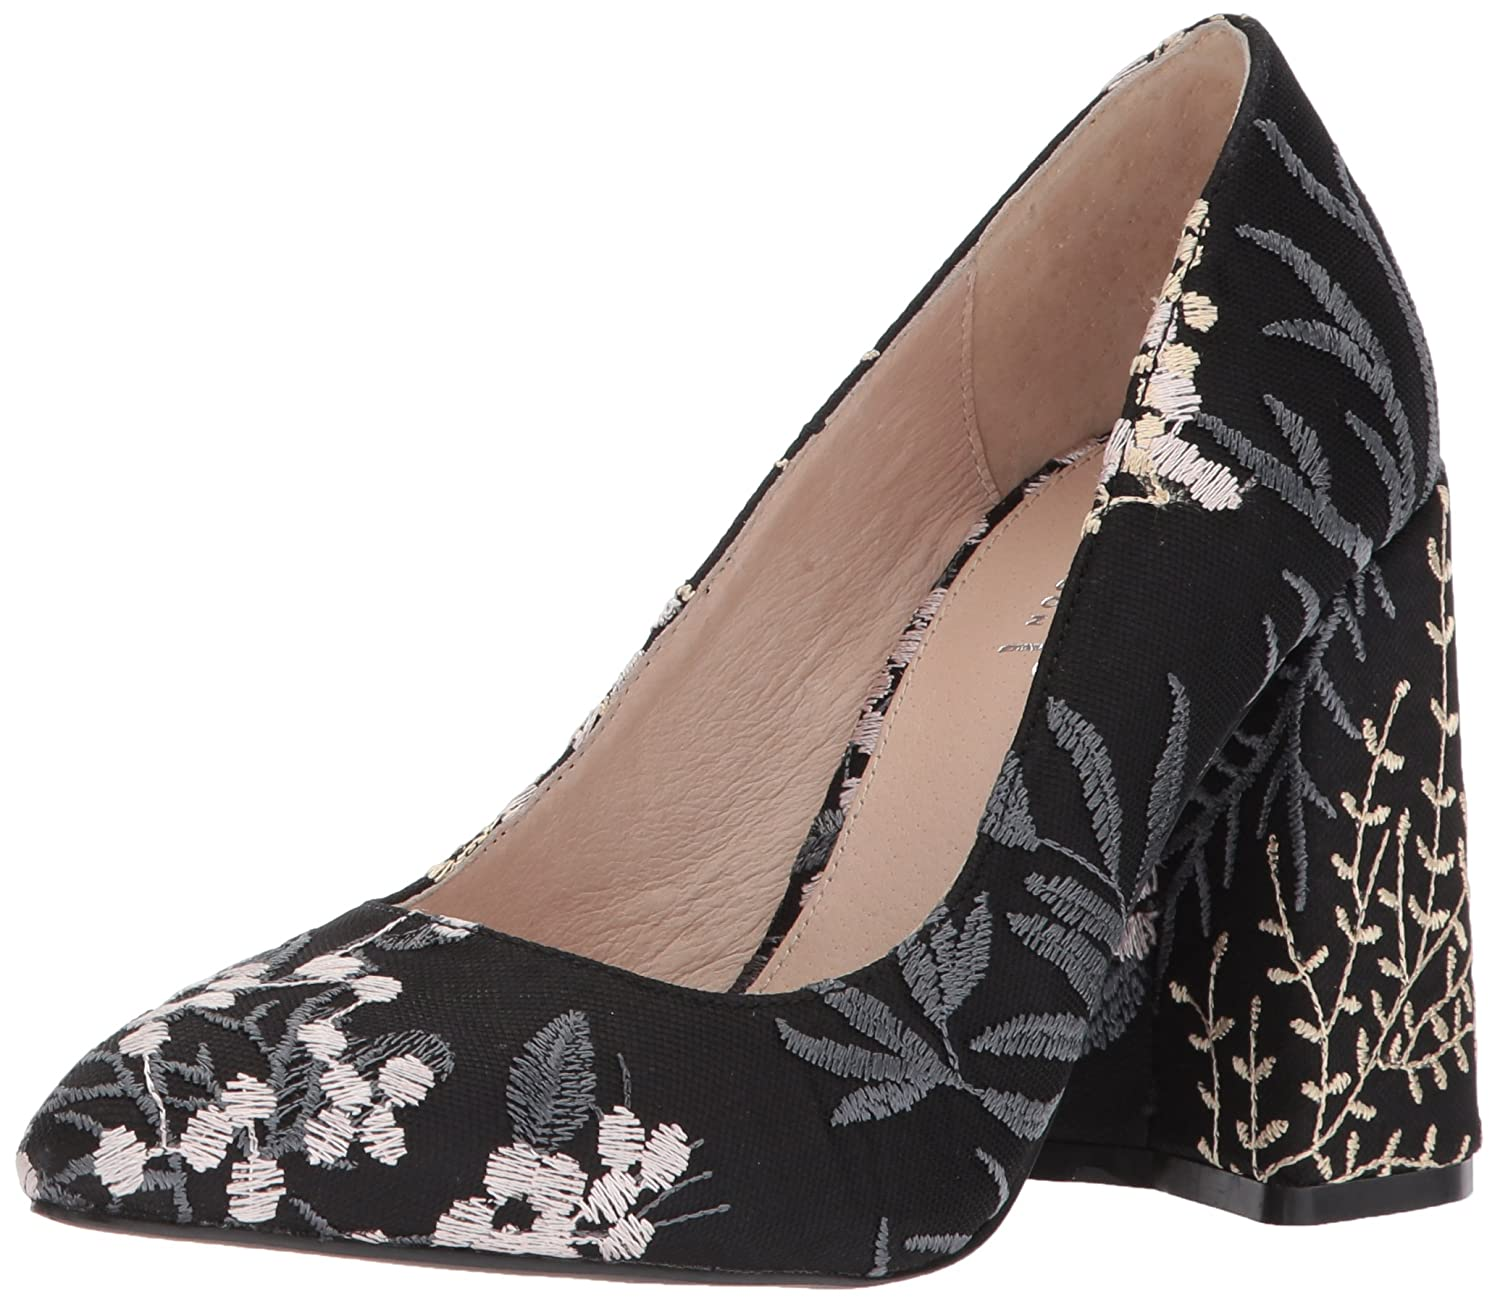 Shellys London Women's Hester Pump B073X7YJ5W 41 M EU (10 US)|Black Floral